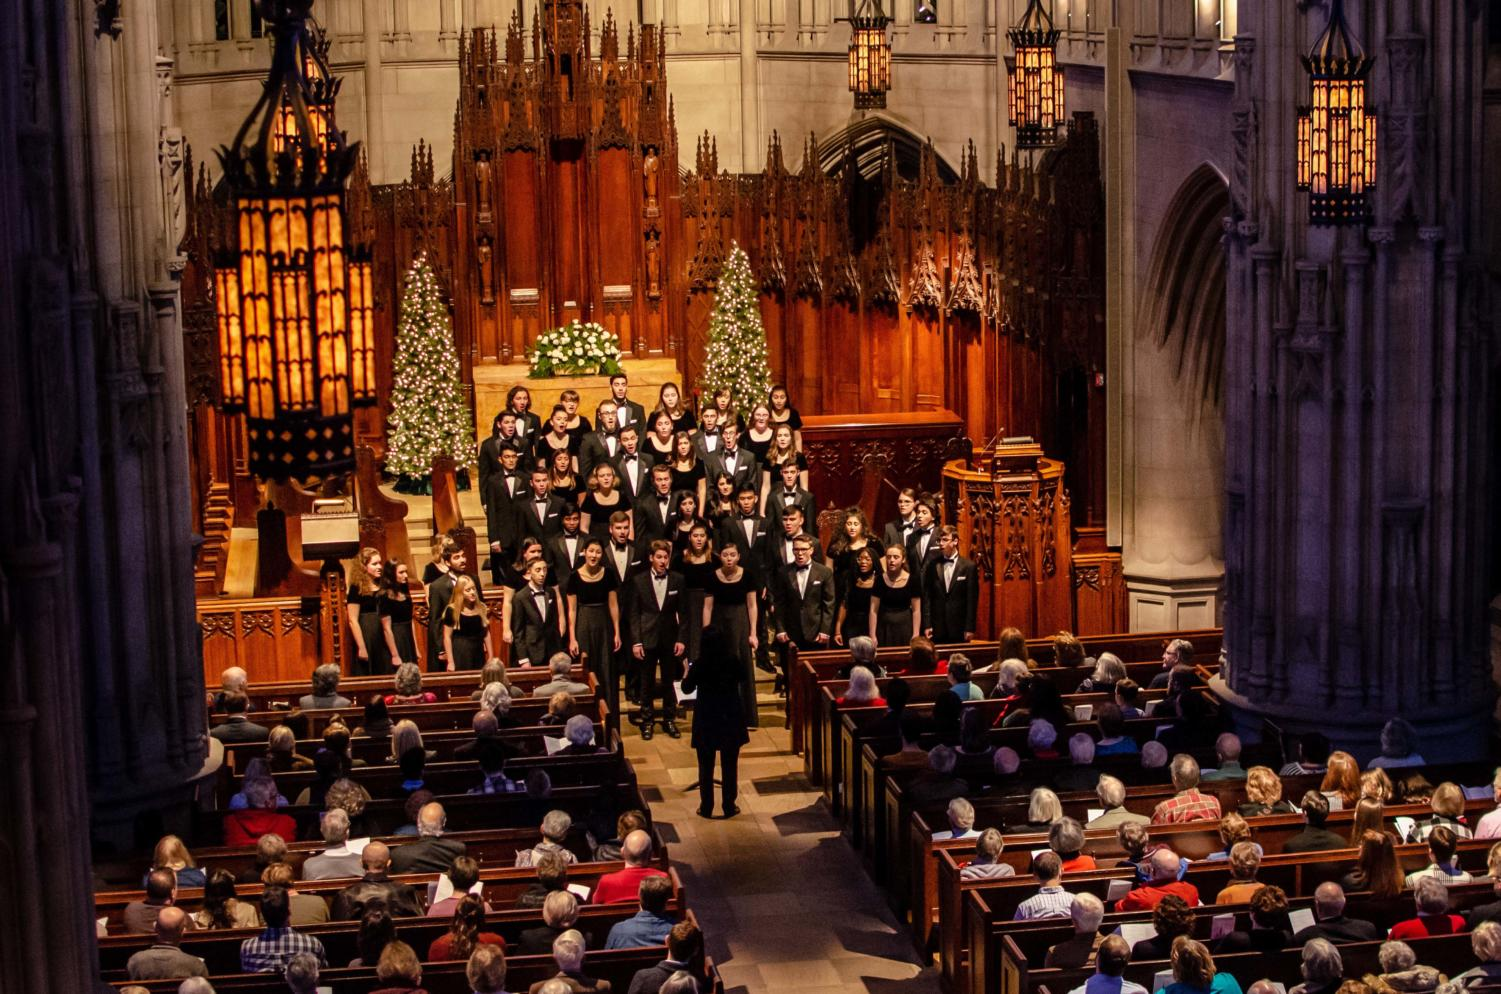 """The Heinz Chapel Choir, which consists of 46 students, performed its holiday concert """"To Make Music in the Heart"""" on Tuesday evening."""